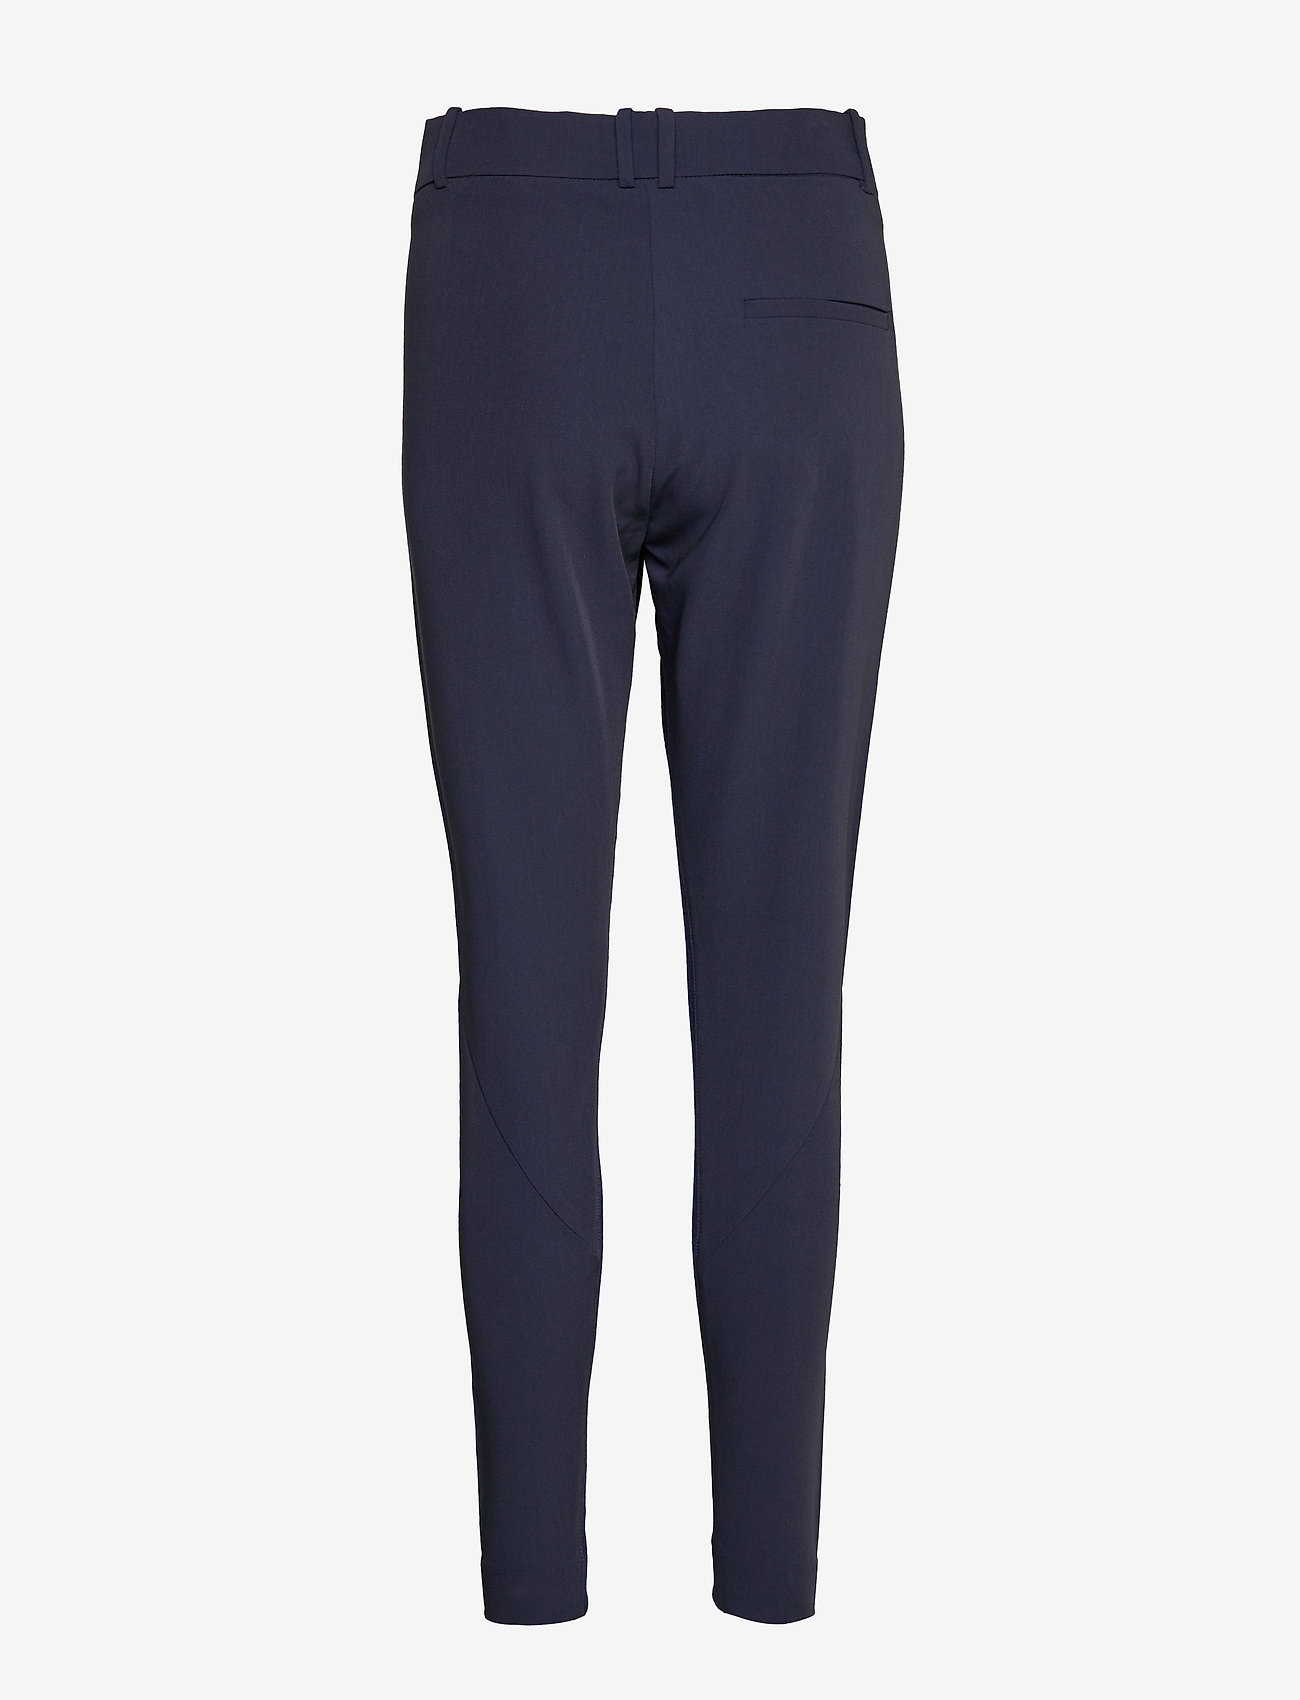 Coster Copenhagen - Suit pants - Coco - broeken med skinny fit - dark blue - 1